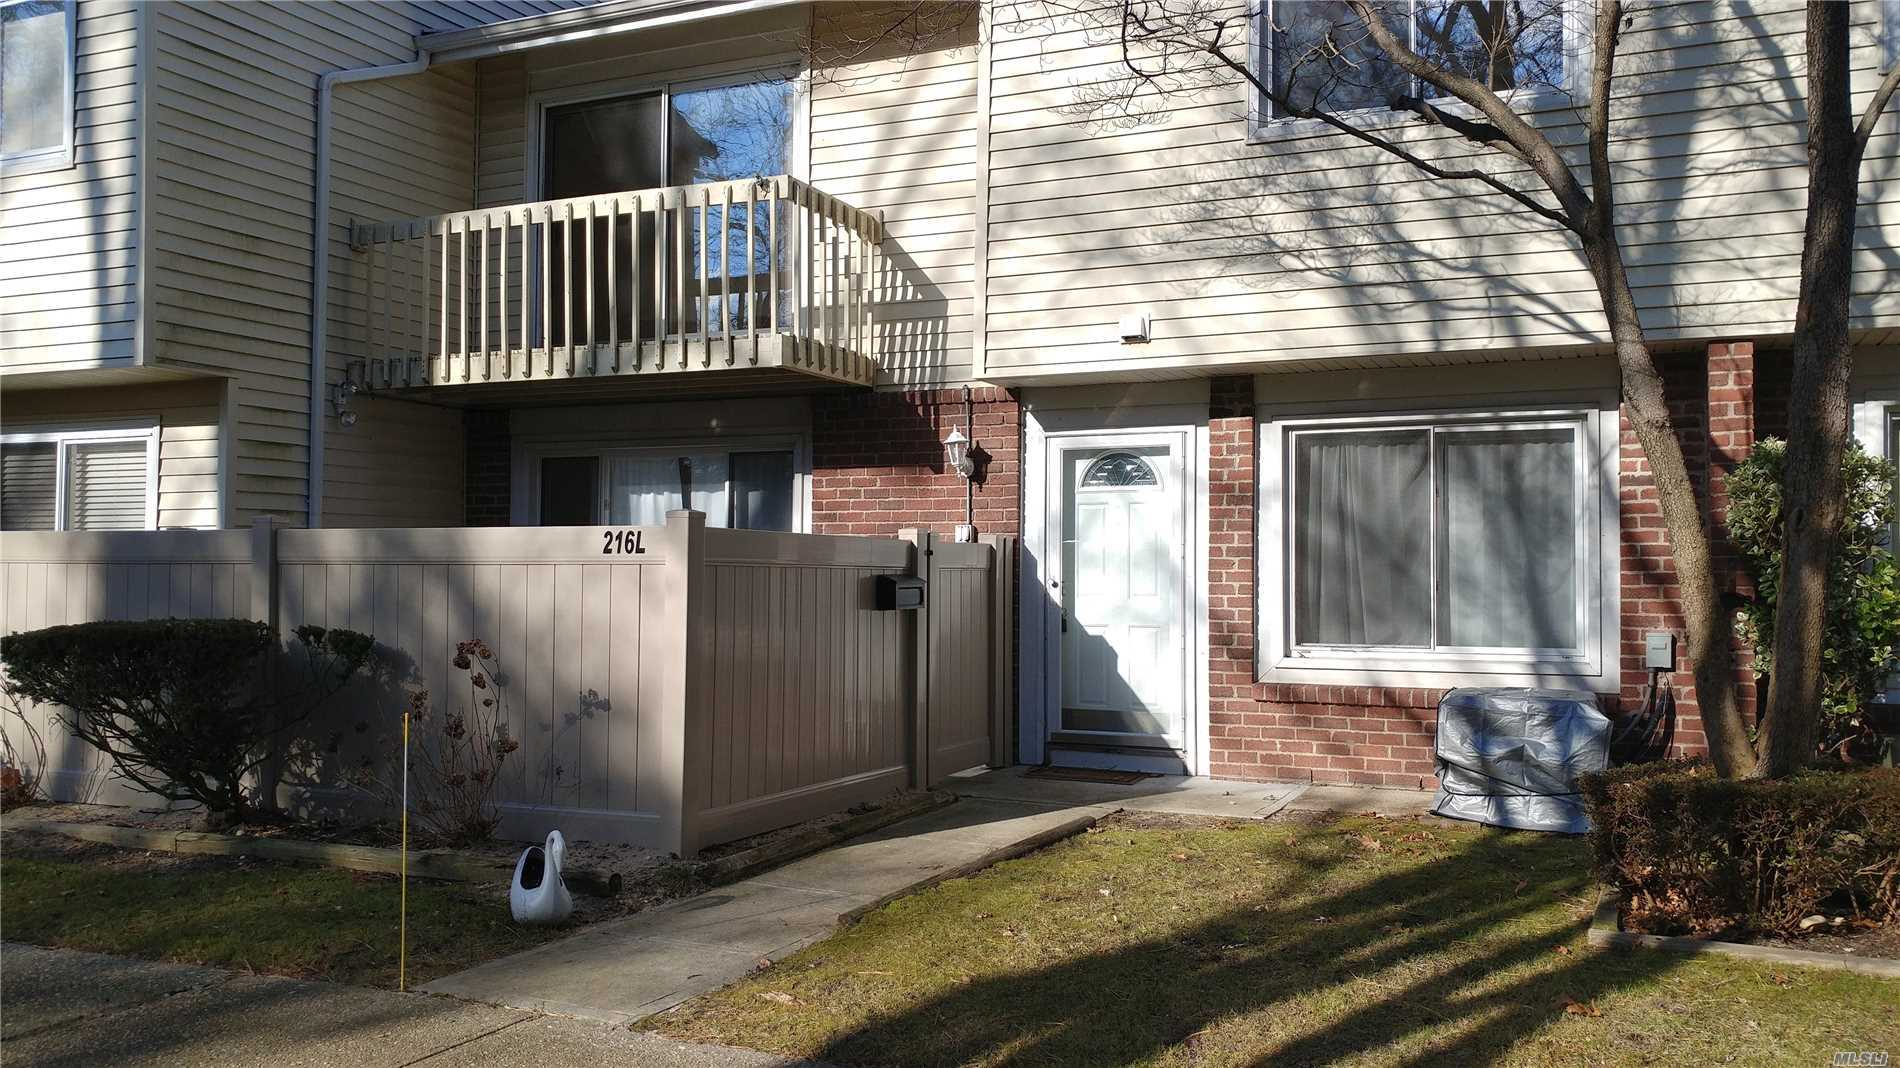 Great Rental Opportunity In Woodgate Development! Townhouse Style Condo In Desirable Courtyard Location Unit, Newly Painted, New Cac And Heating System. Development Features Community Inground Pool, Two Tennis Courts, And Clubhouse!